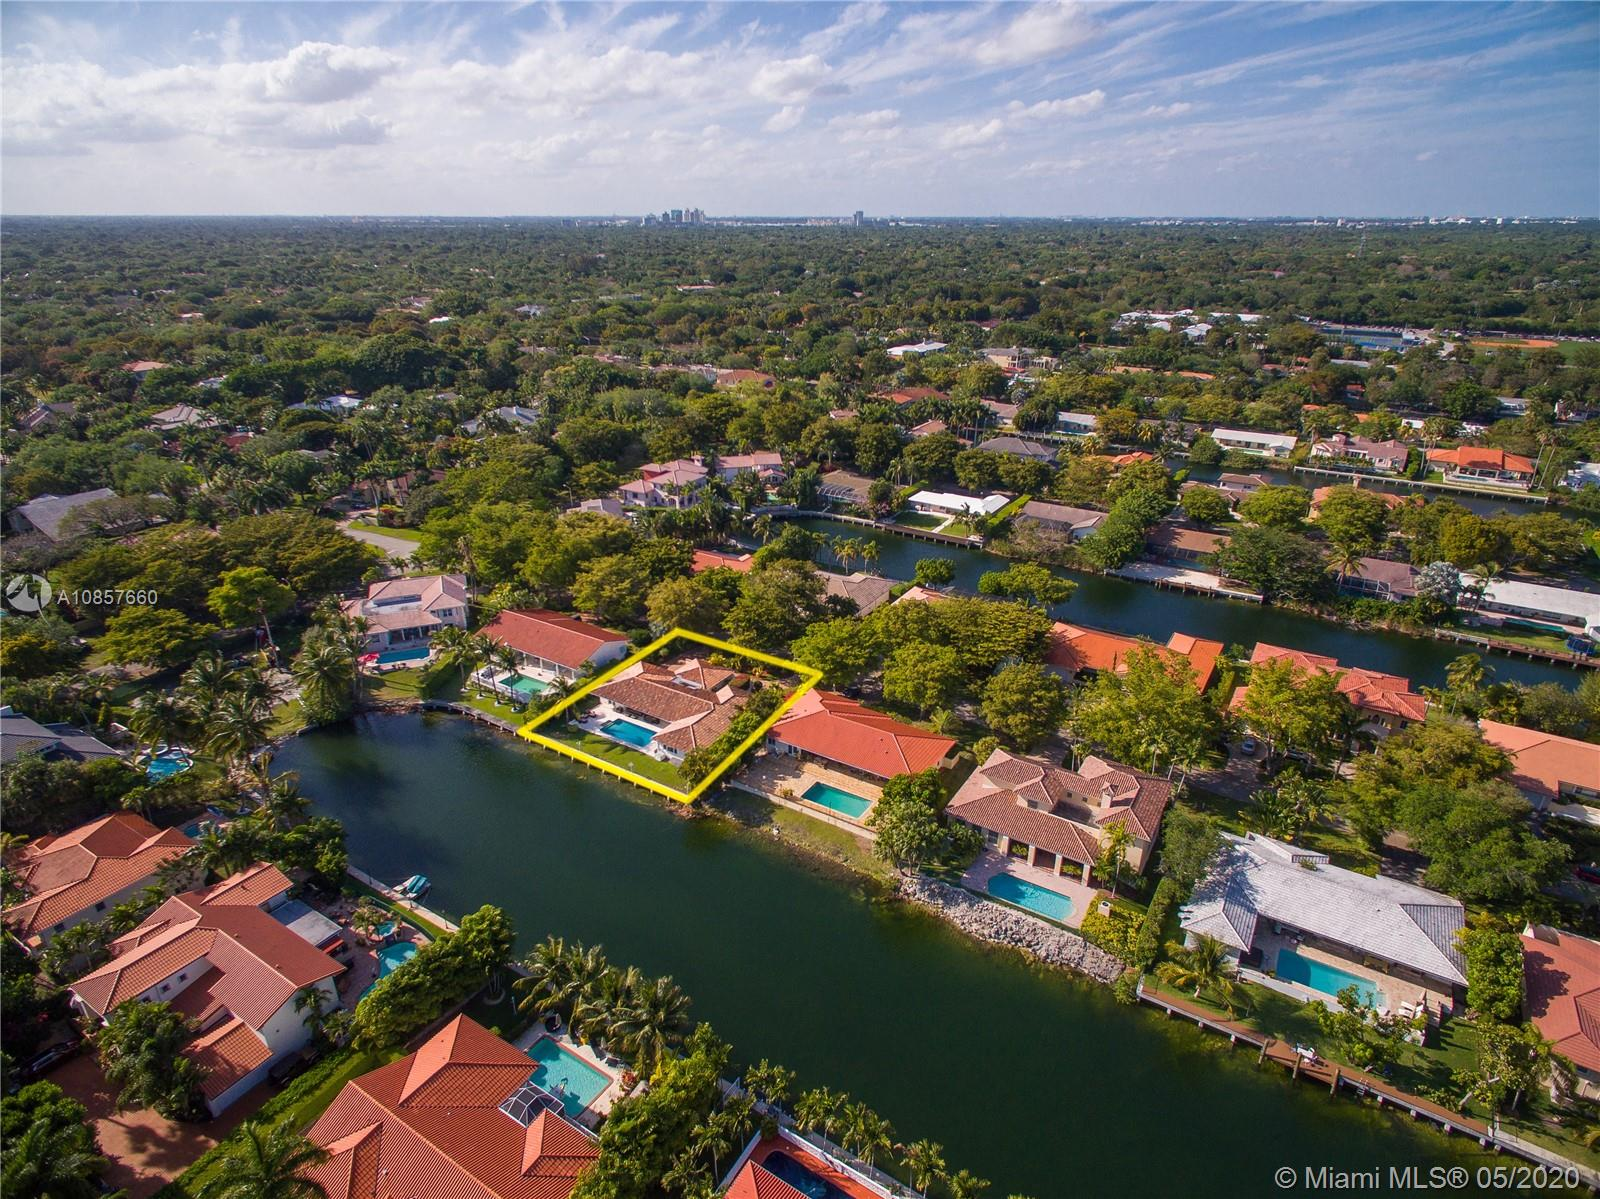 1520 Tagus Ave, Coral Gables, Florida 33156, 5 Bedrooms Bedrooms, ,4 BathroomsBathrooms,Residential,For Sale,1520 Tagus Ave,A10857660